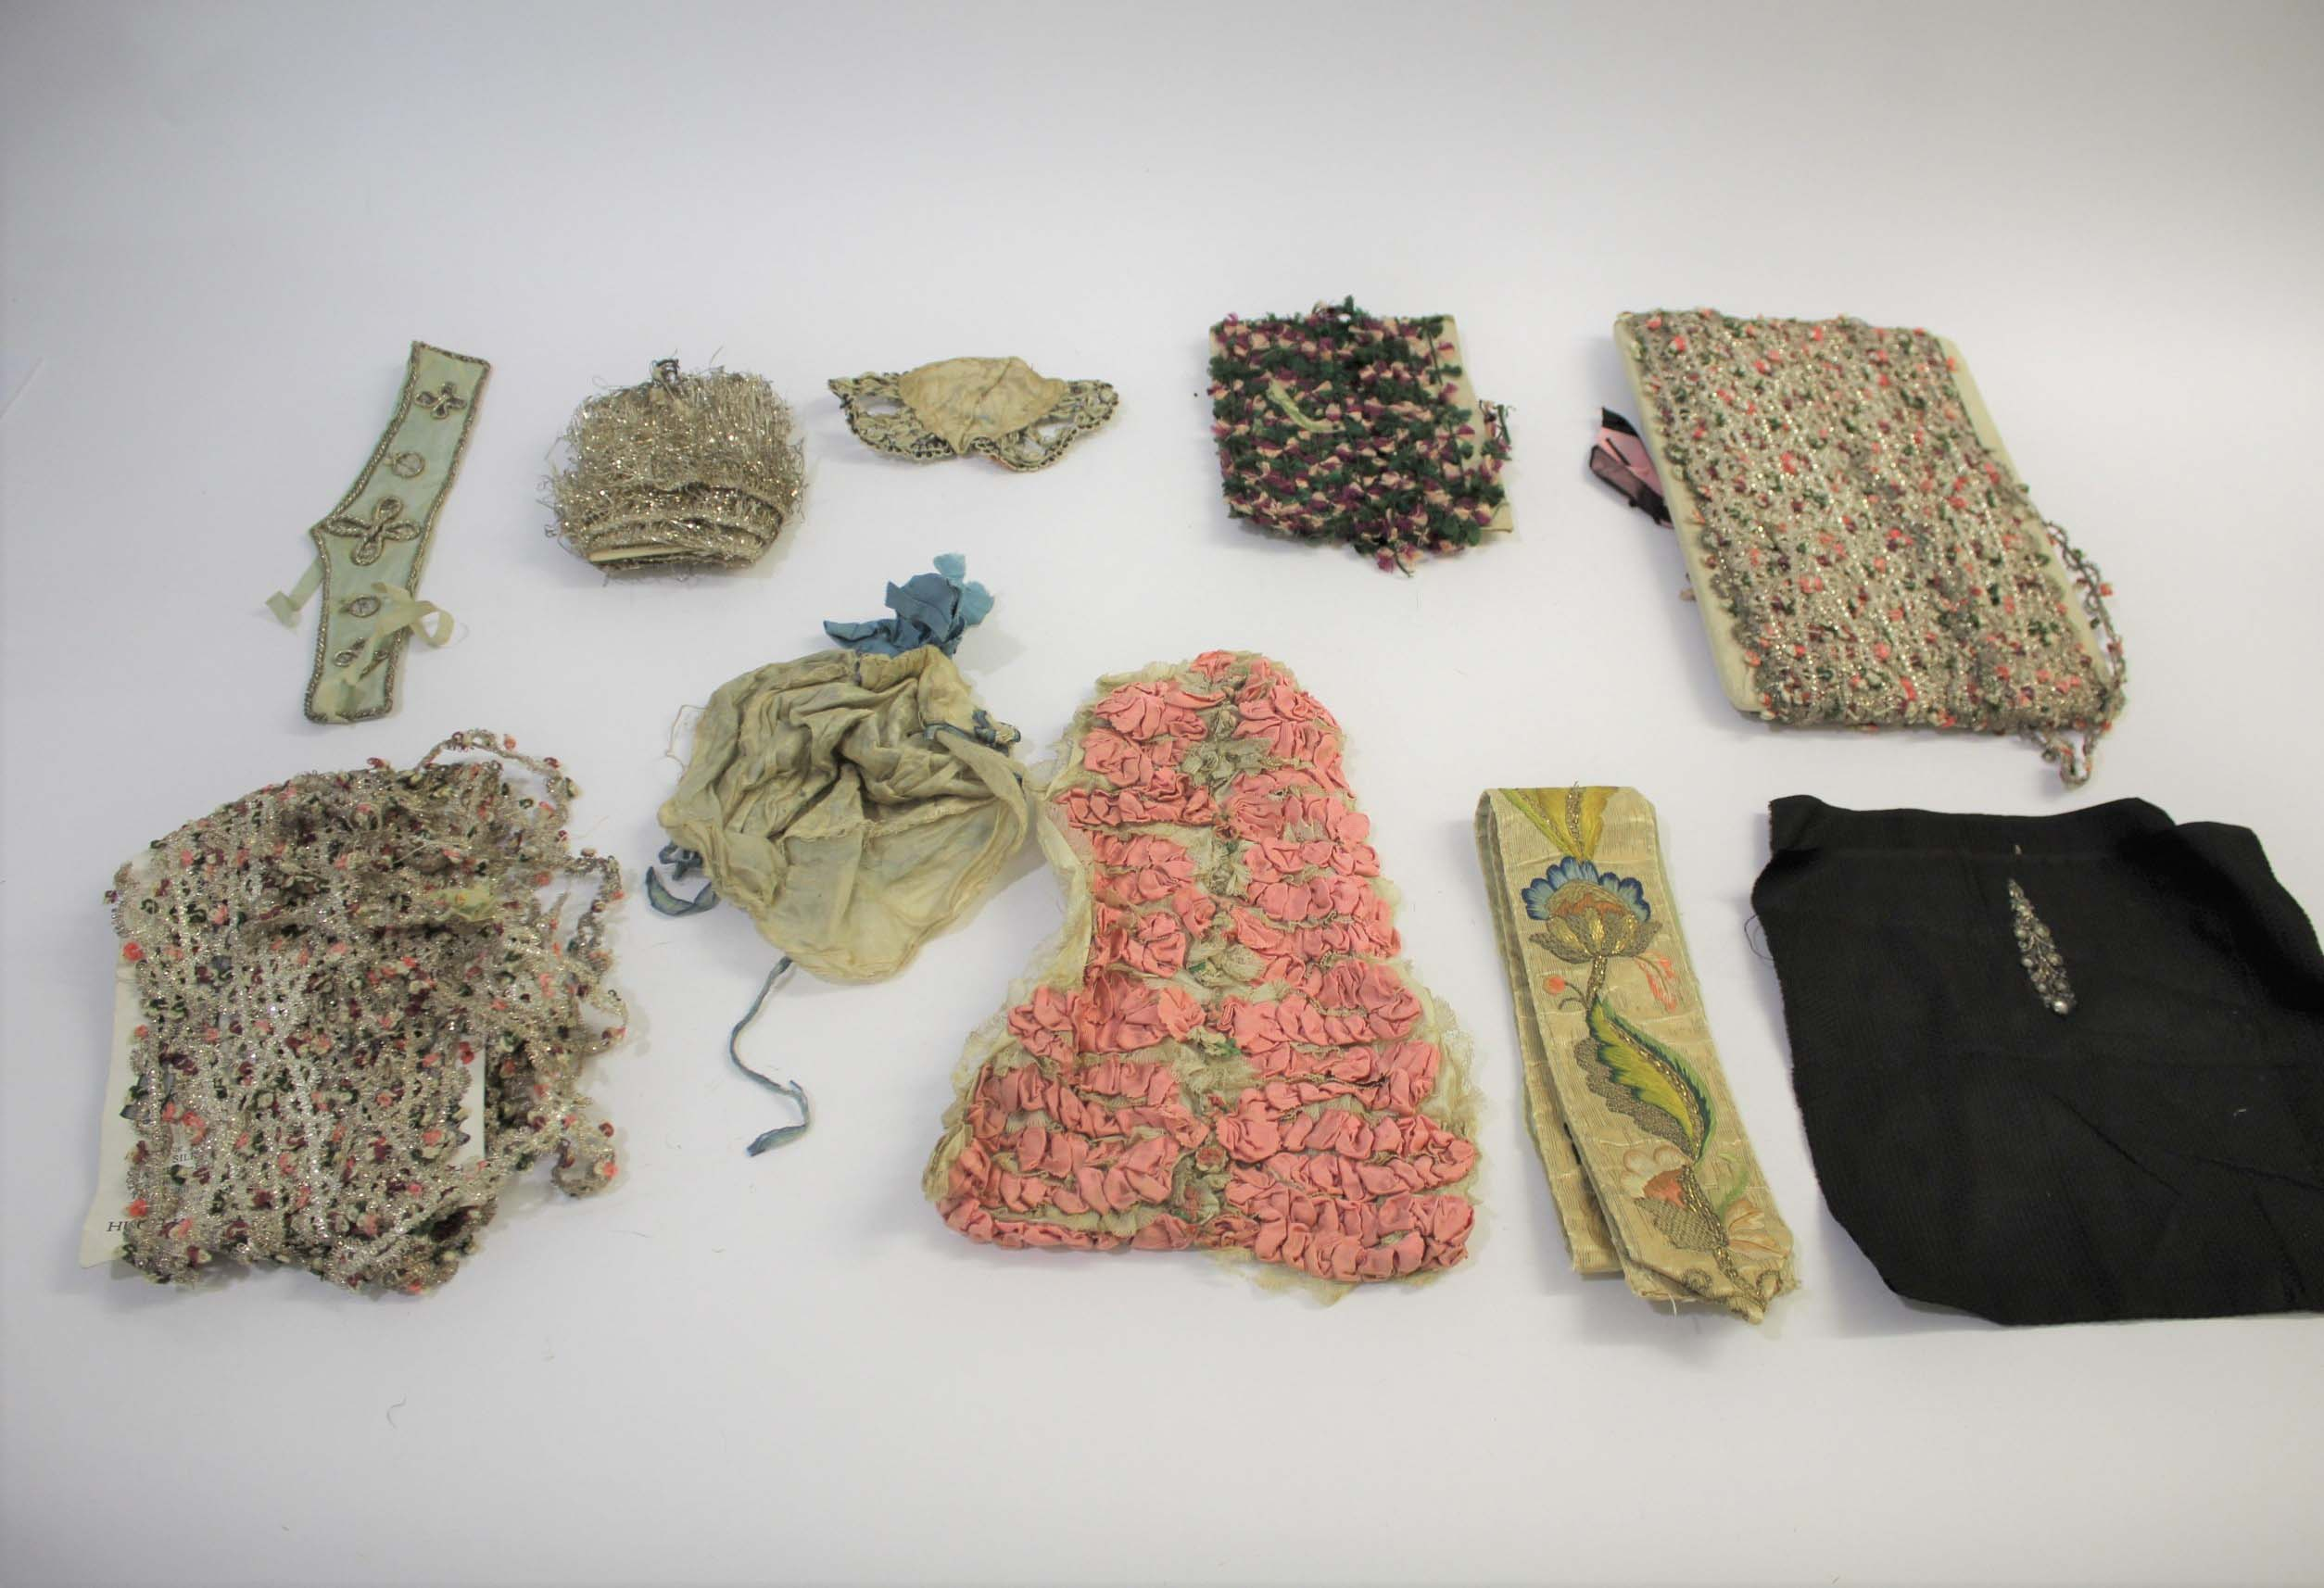 COLLECTION OF 18TH & 19THC TEXTILES & TRIMMINGS an interesting collection of 18th and 19thc